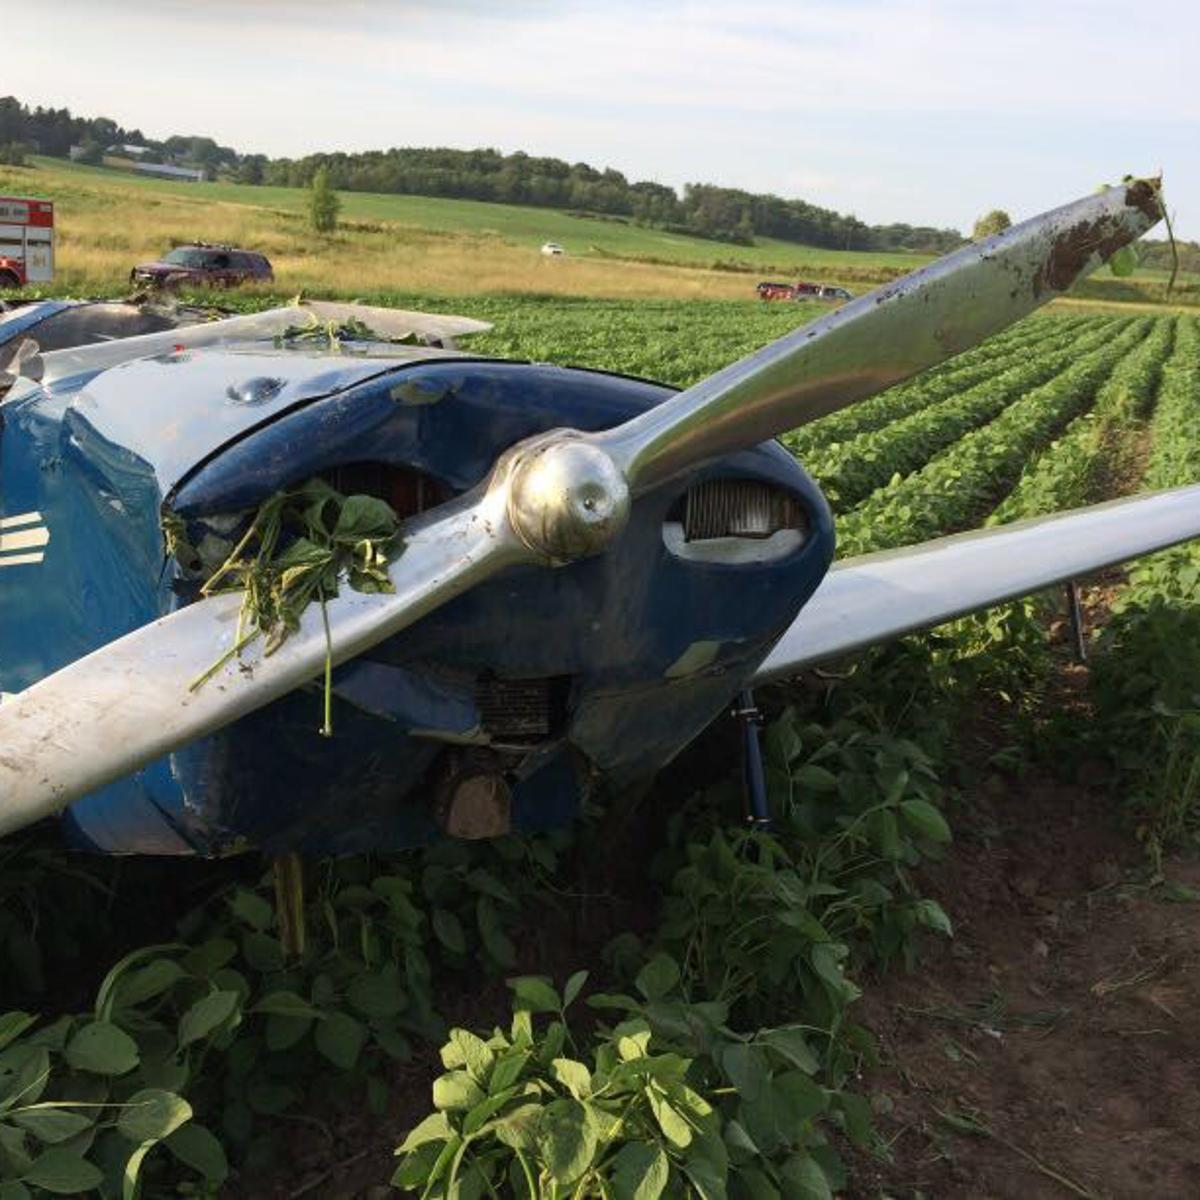 Plane crashes in Vernon County on way to EAA Air Show, 2